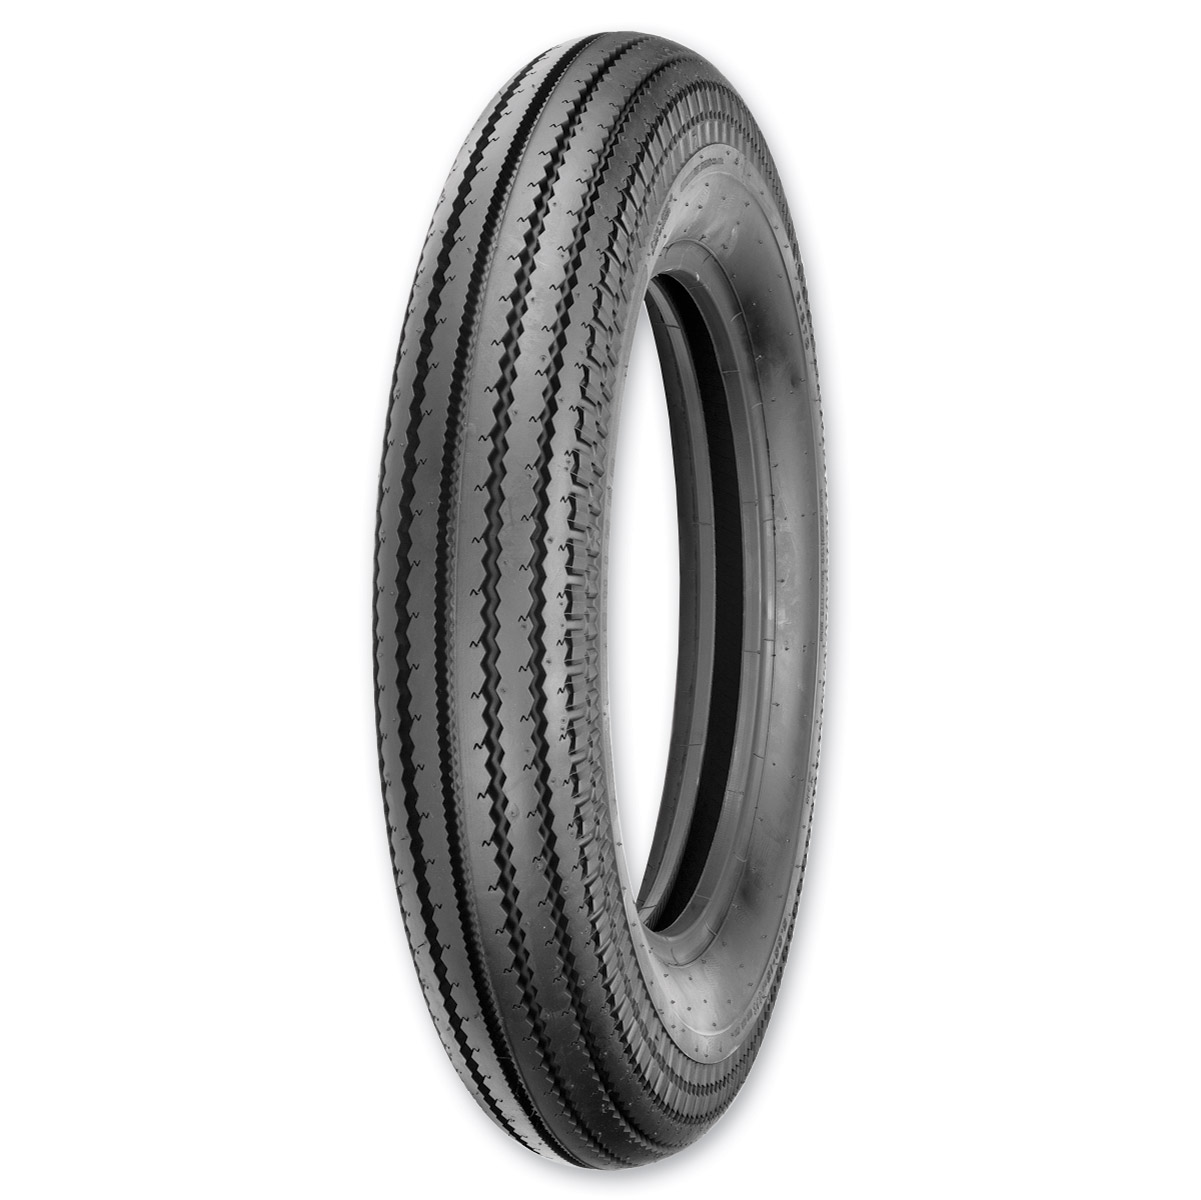 Shinko 270 5.00-16 Front/Rear Tire